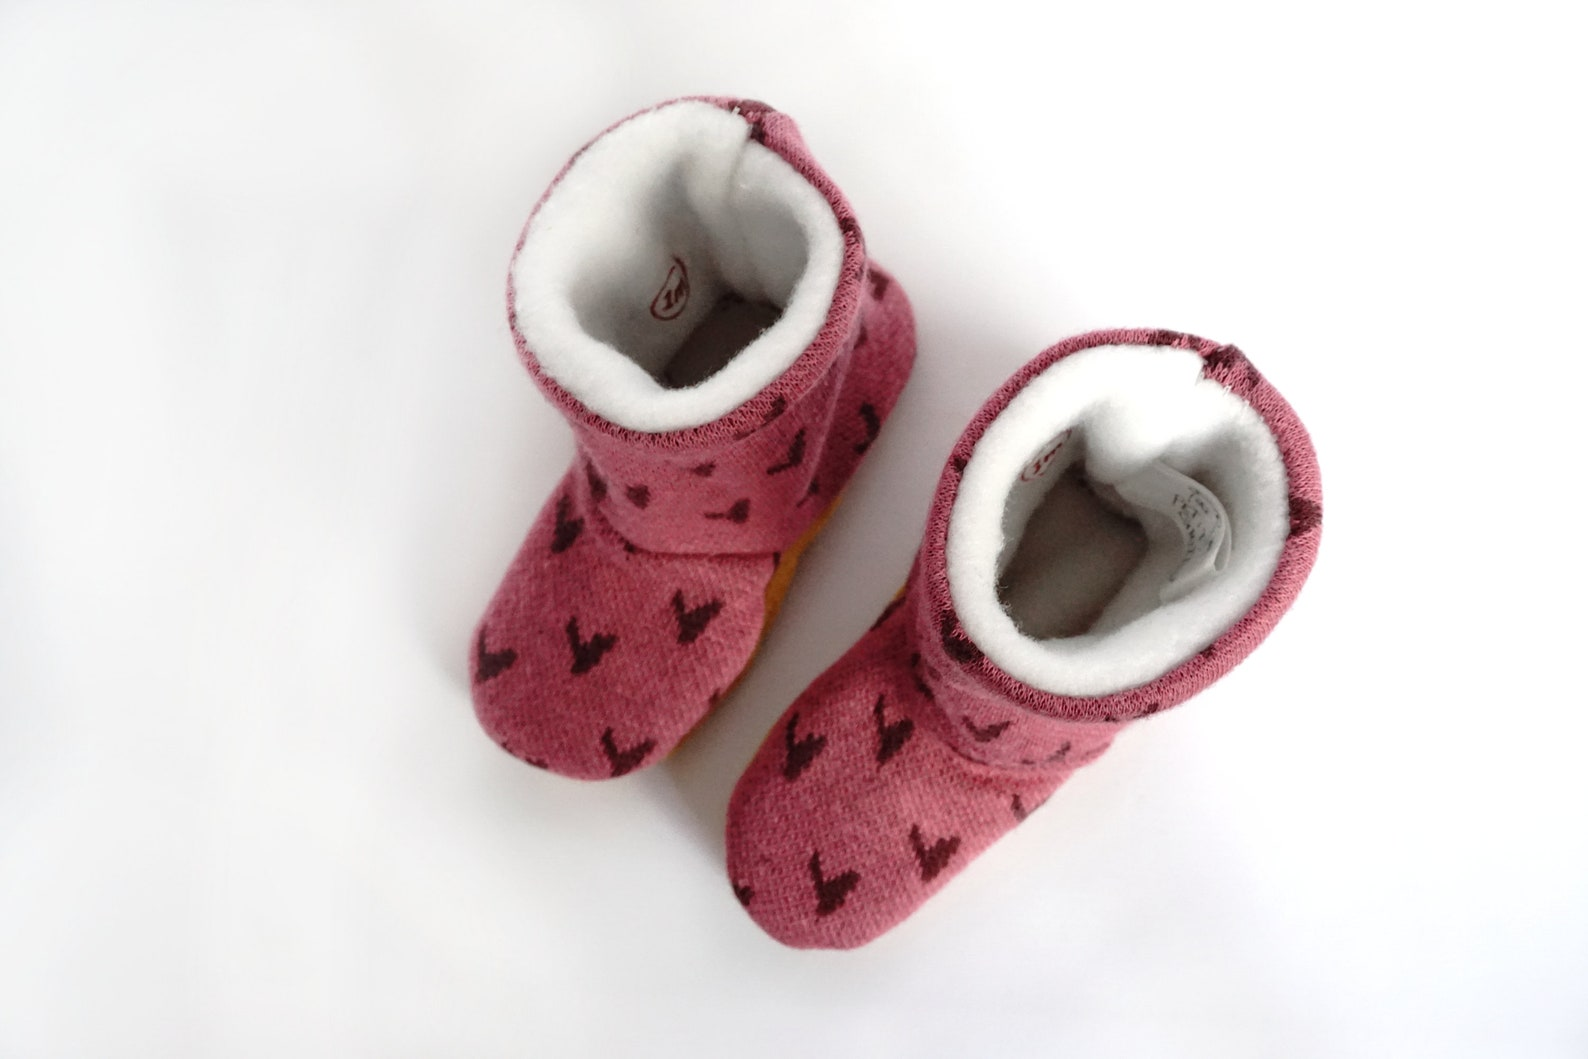 ballet shoe mittens bell hot /mitaine baby child / boy girl / organic cotton/small grizzly /shower birth gift